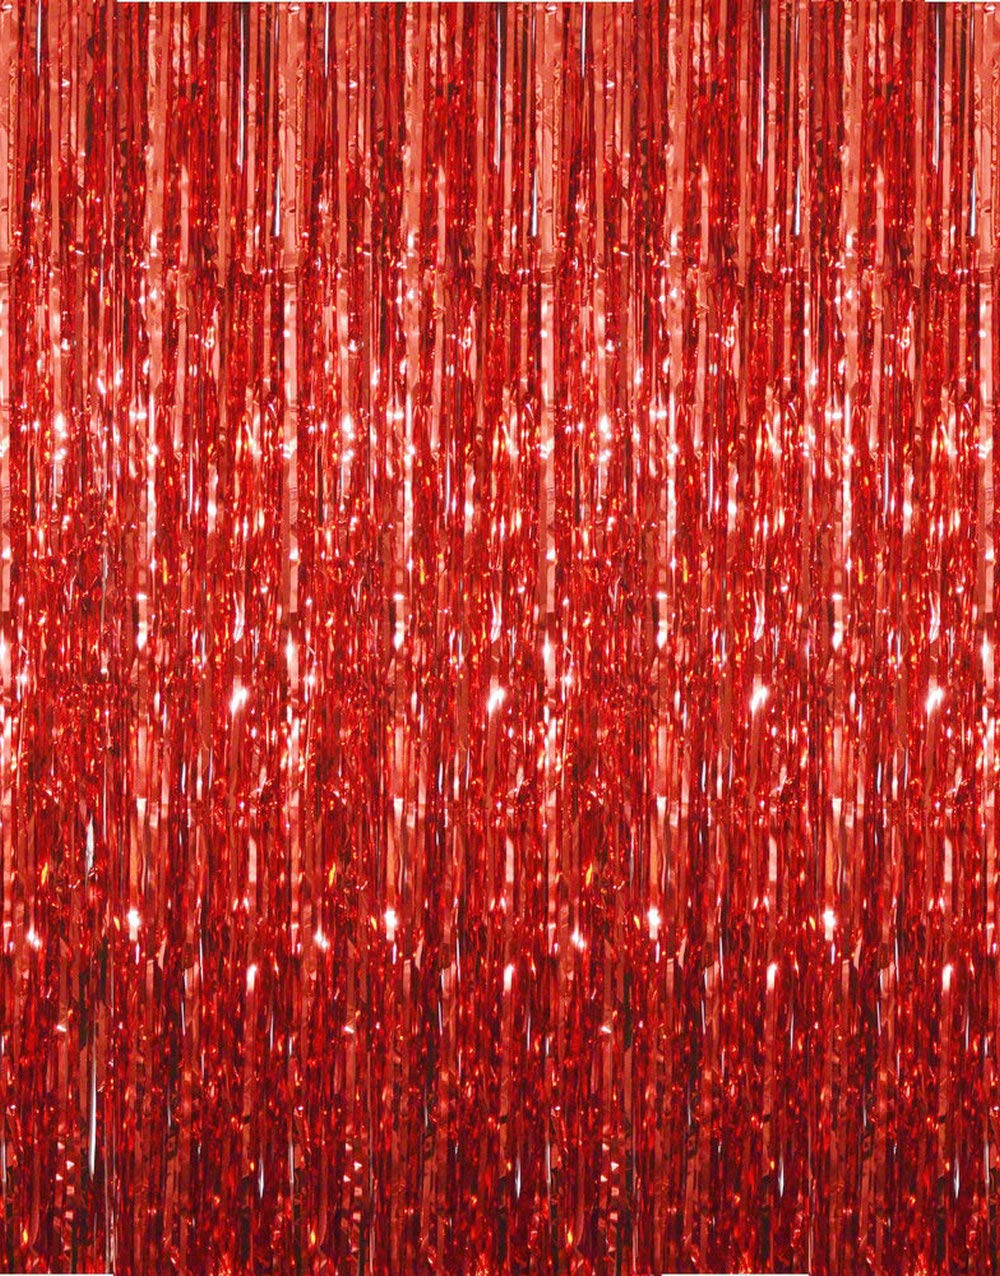 GOER 3.2 ft x 9.8 ft Metallic Tinsel Foil Fringe Curtains for Party Photo Backdrop Wedding Decor (1 Pack, Red)